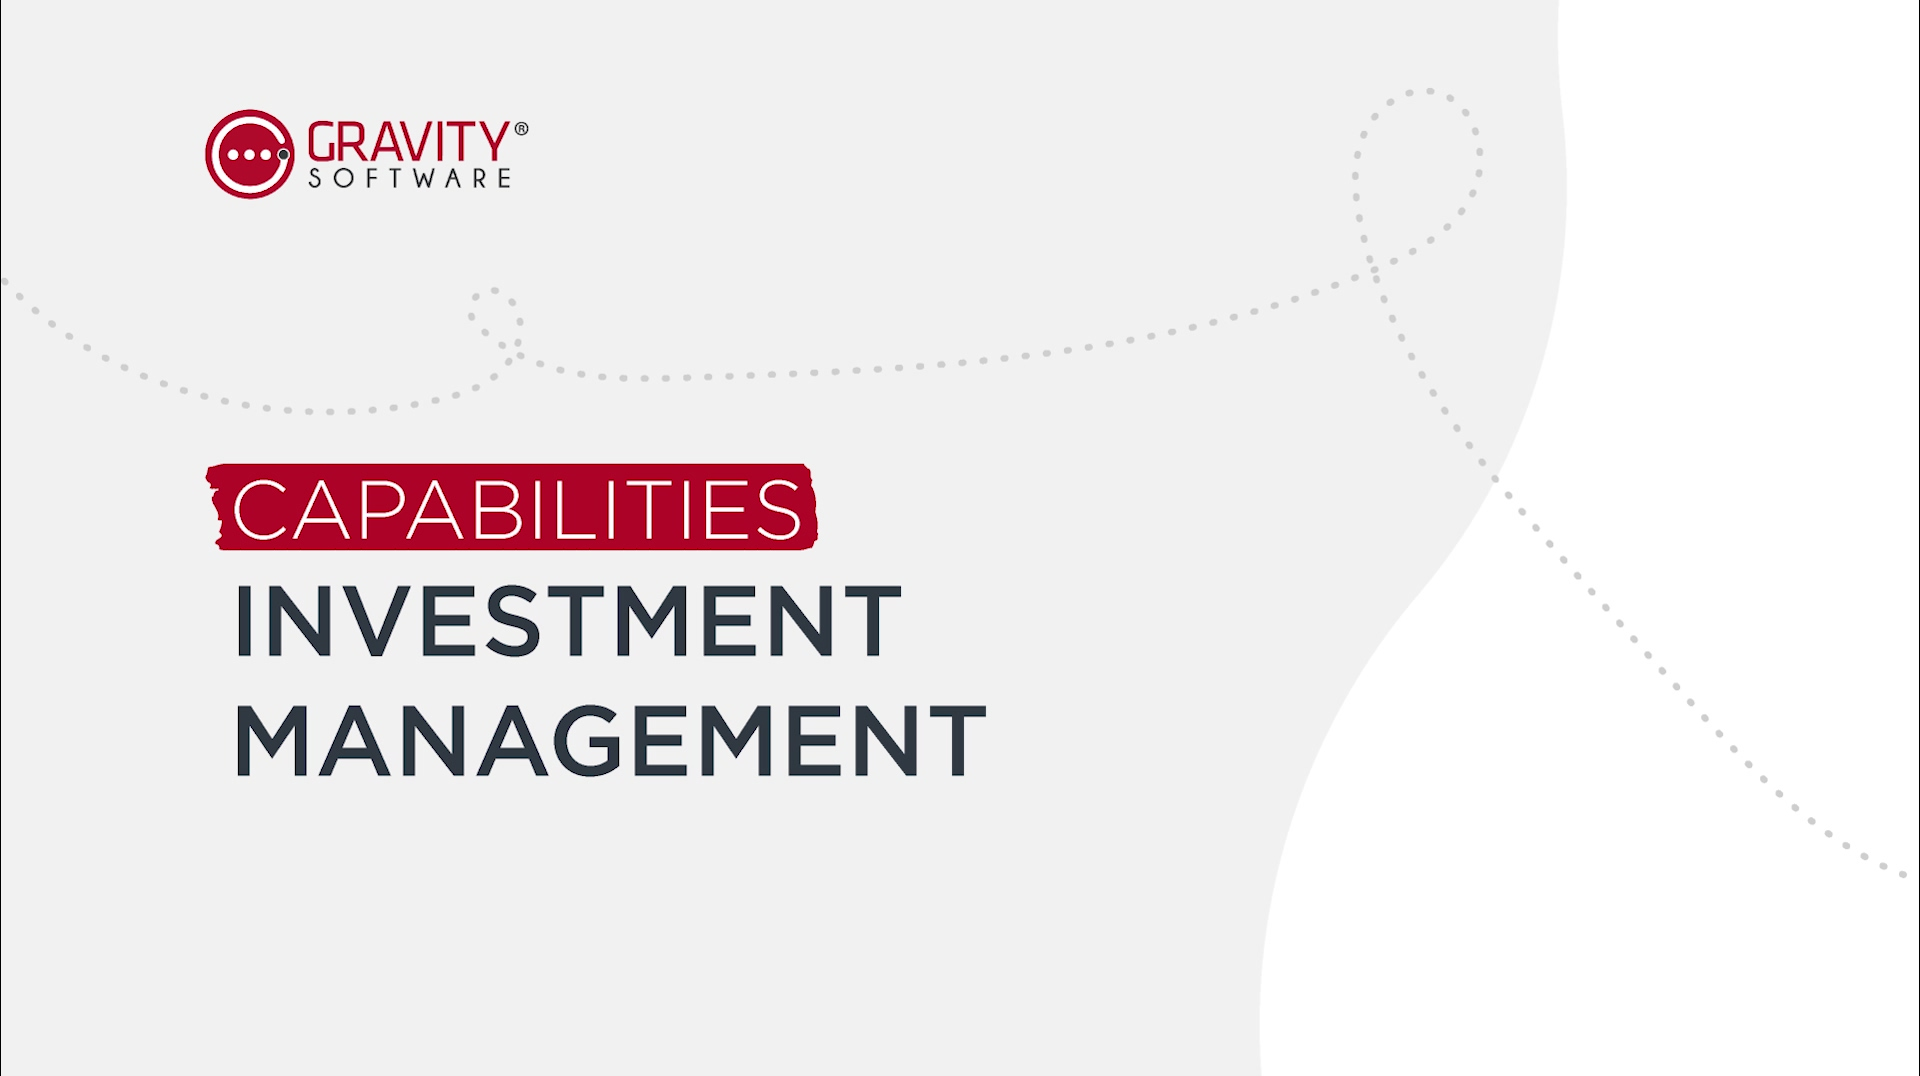 Gravity Software Investment Management SubLedger Capabilities